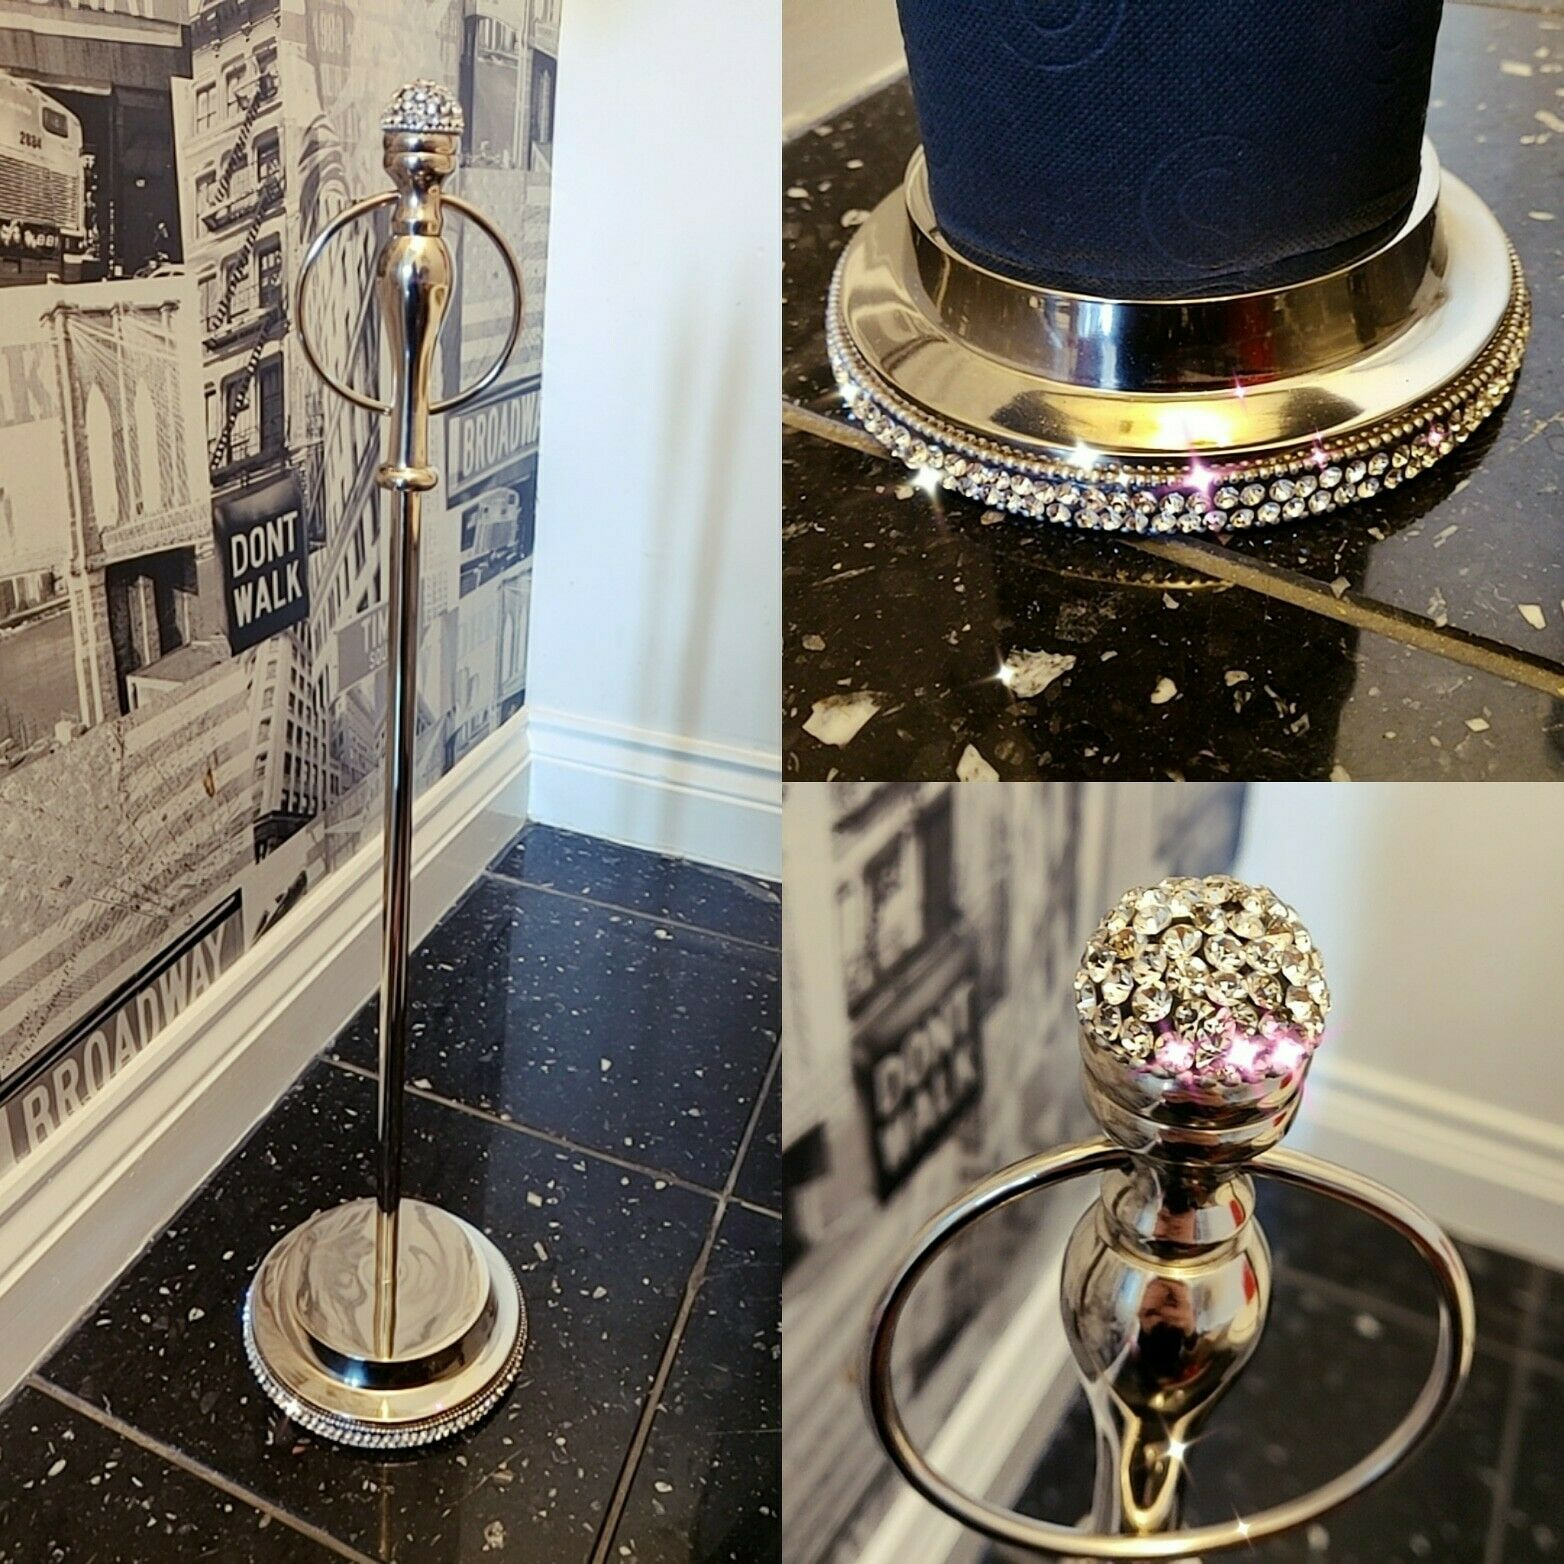 Freestanding Toilet Loo Roll Storage Holder with Swarovski Crystal Top and Base